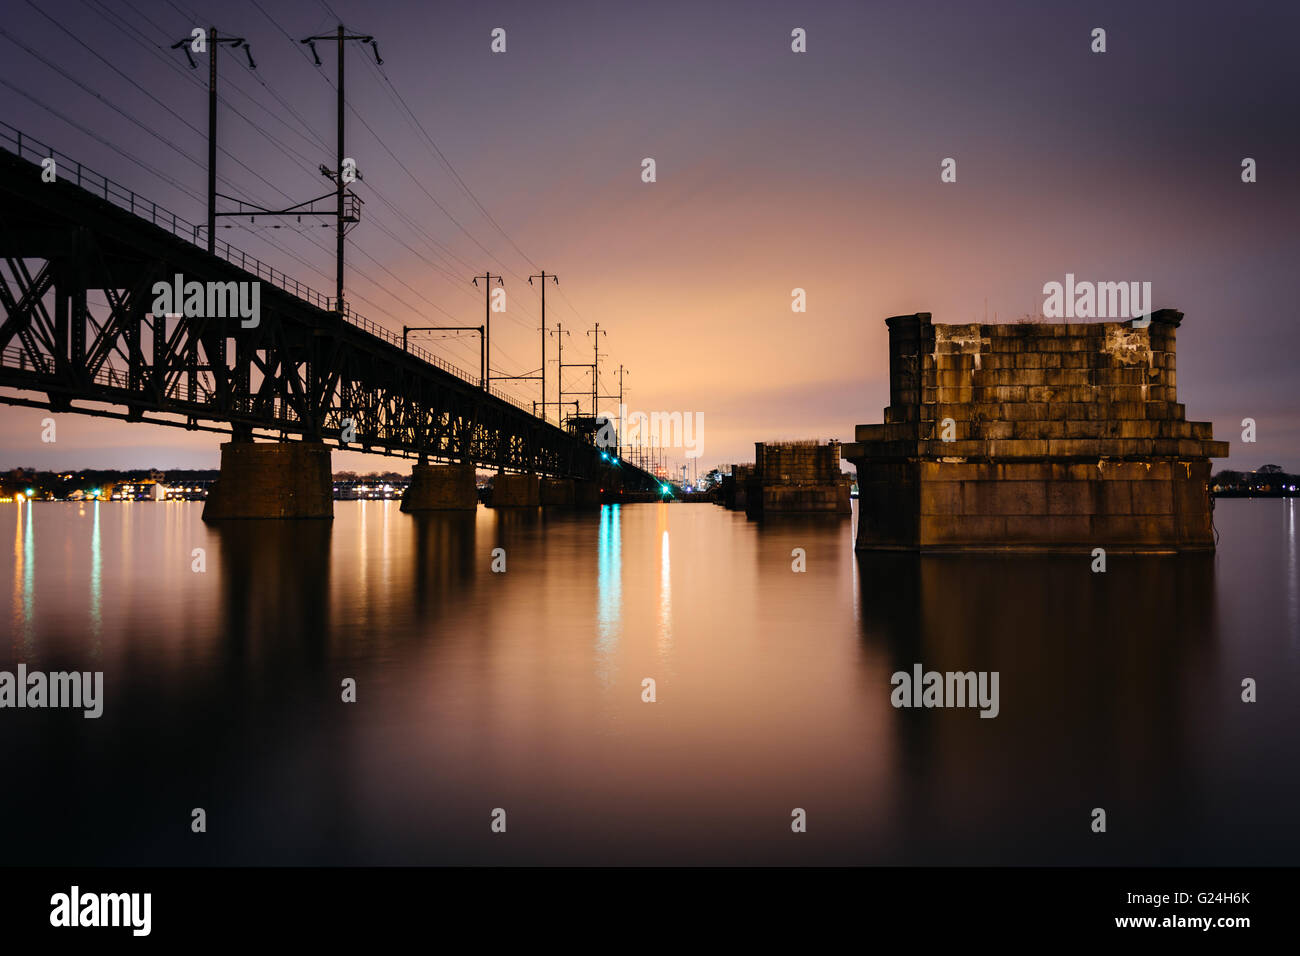 Railroad bridge over the Susquehanna River at night, in Havre de Grace, Maryland. - Stock Image